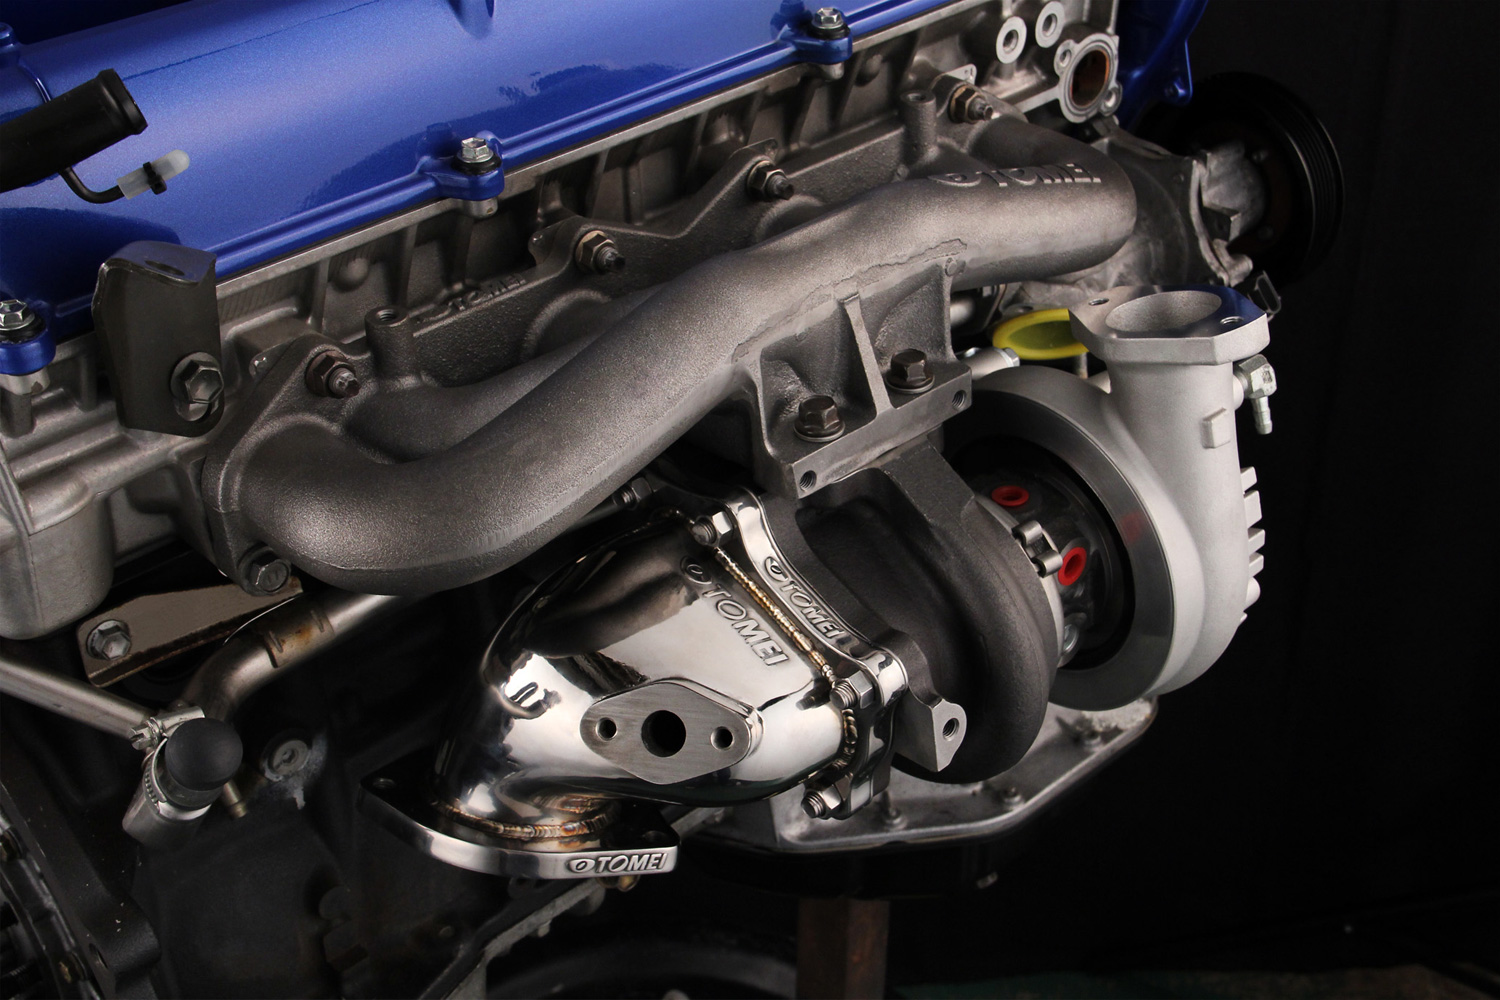 tomei 1jz jzx110 jzs171 gte jzz30 toyota outlet manifold turbo turbine late vvti pipe exhaust jzx100 kit arms downpipe v2